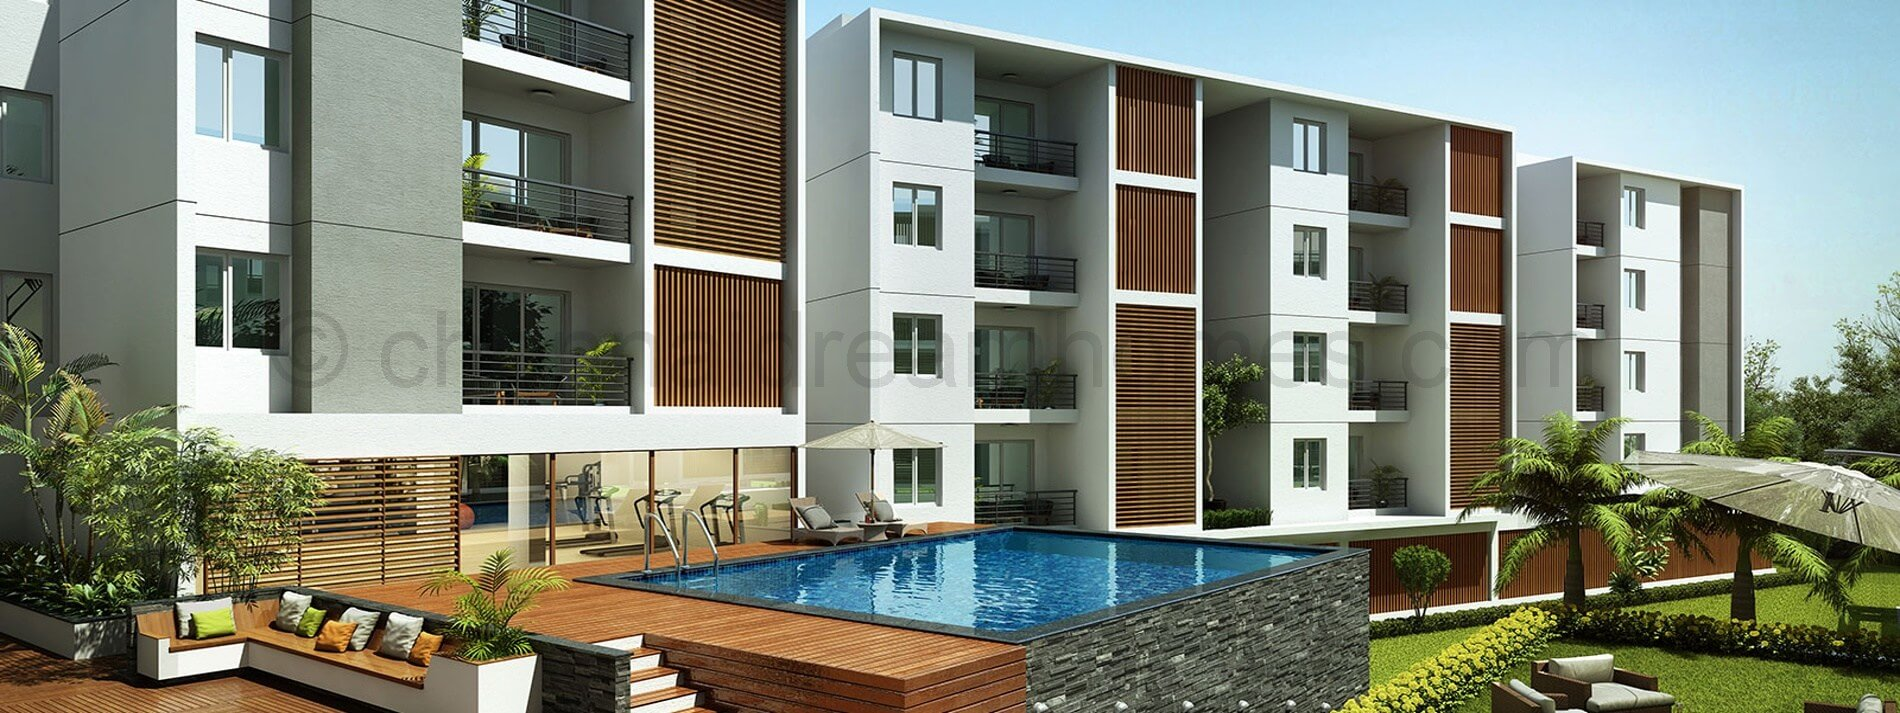 2,3 BHK Flats for sale in Anna Nagar